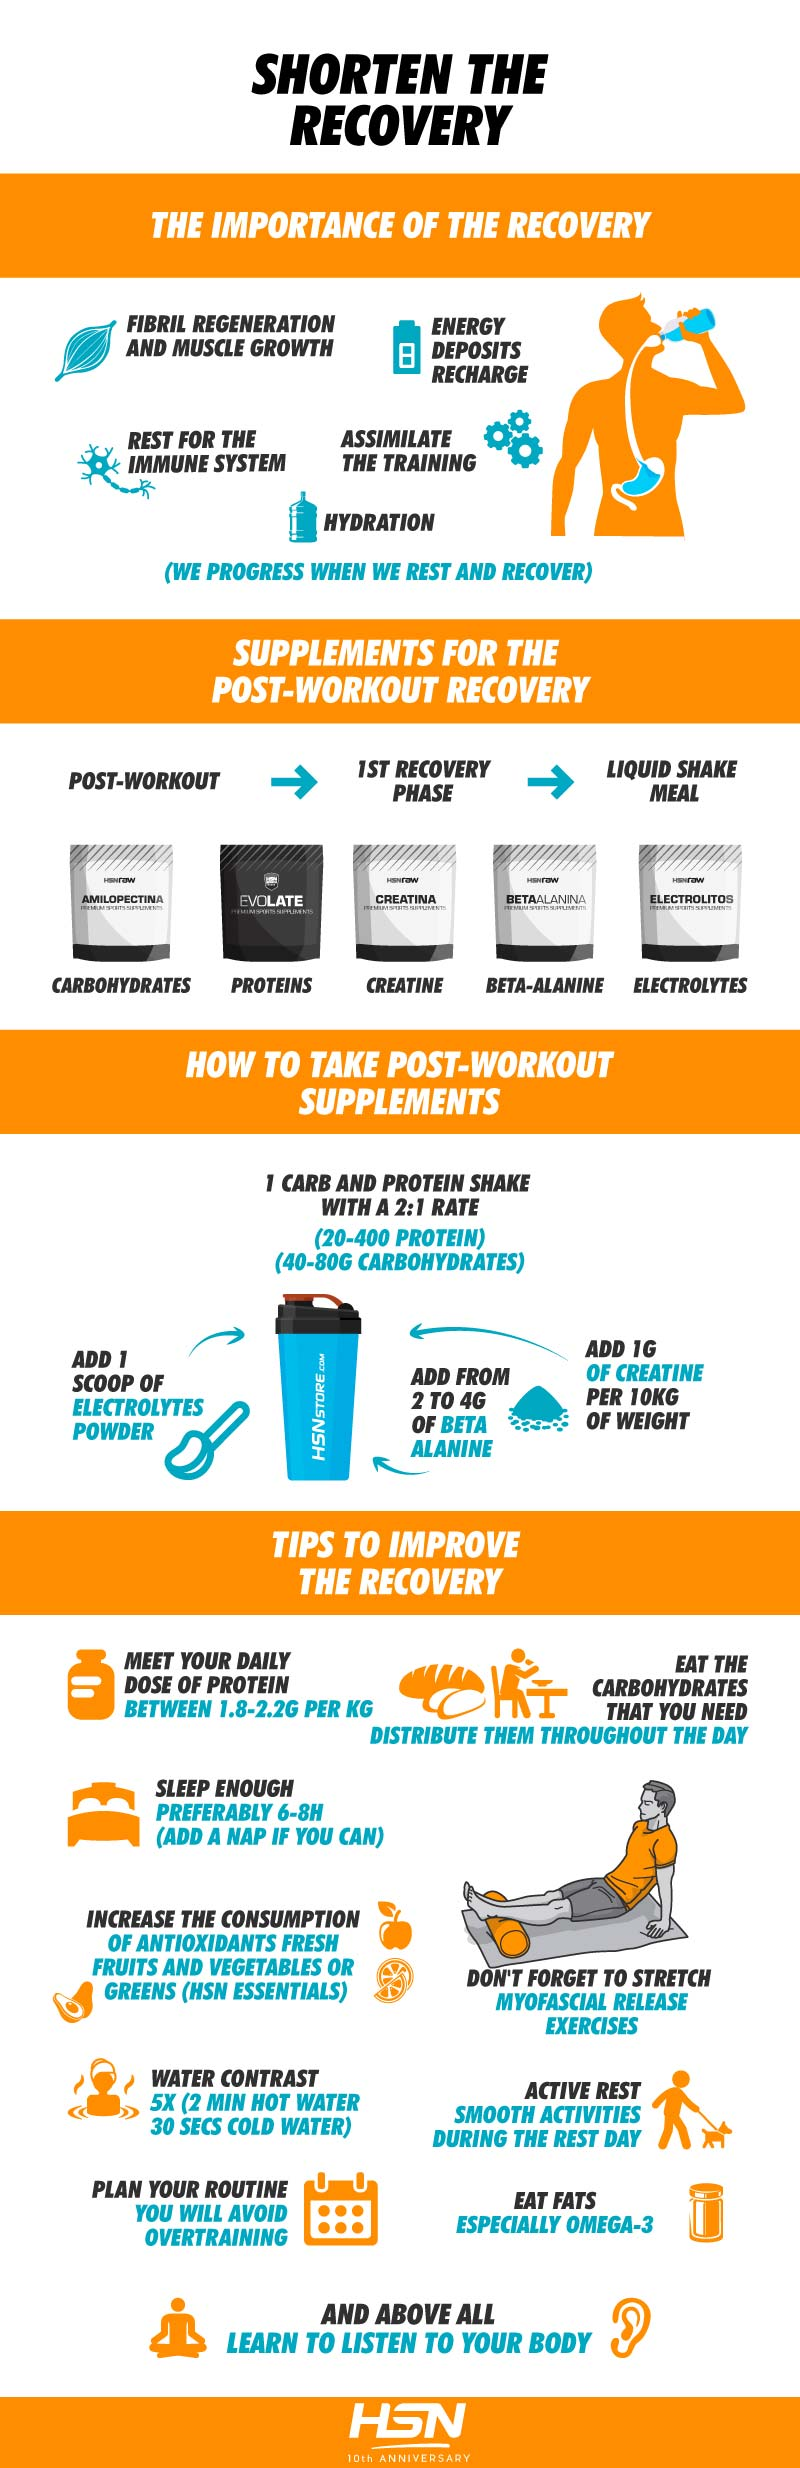 Tips to improve the recovery